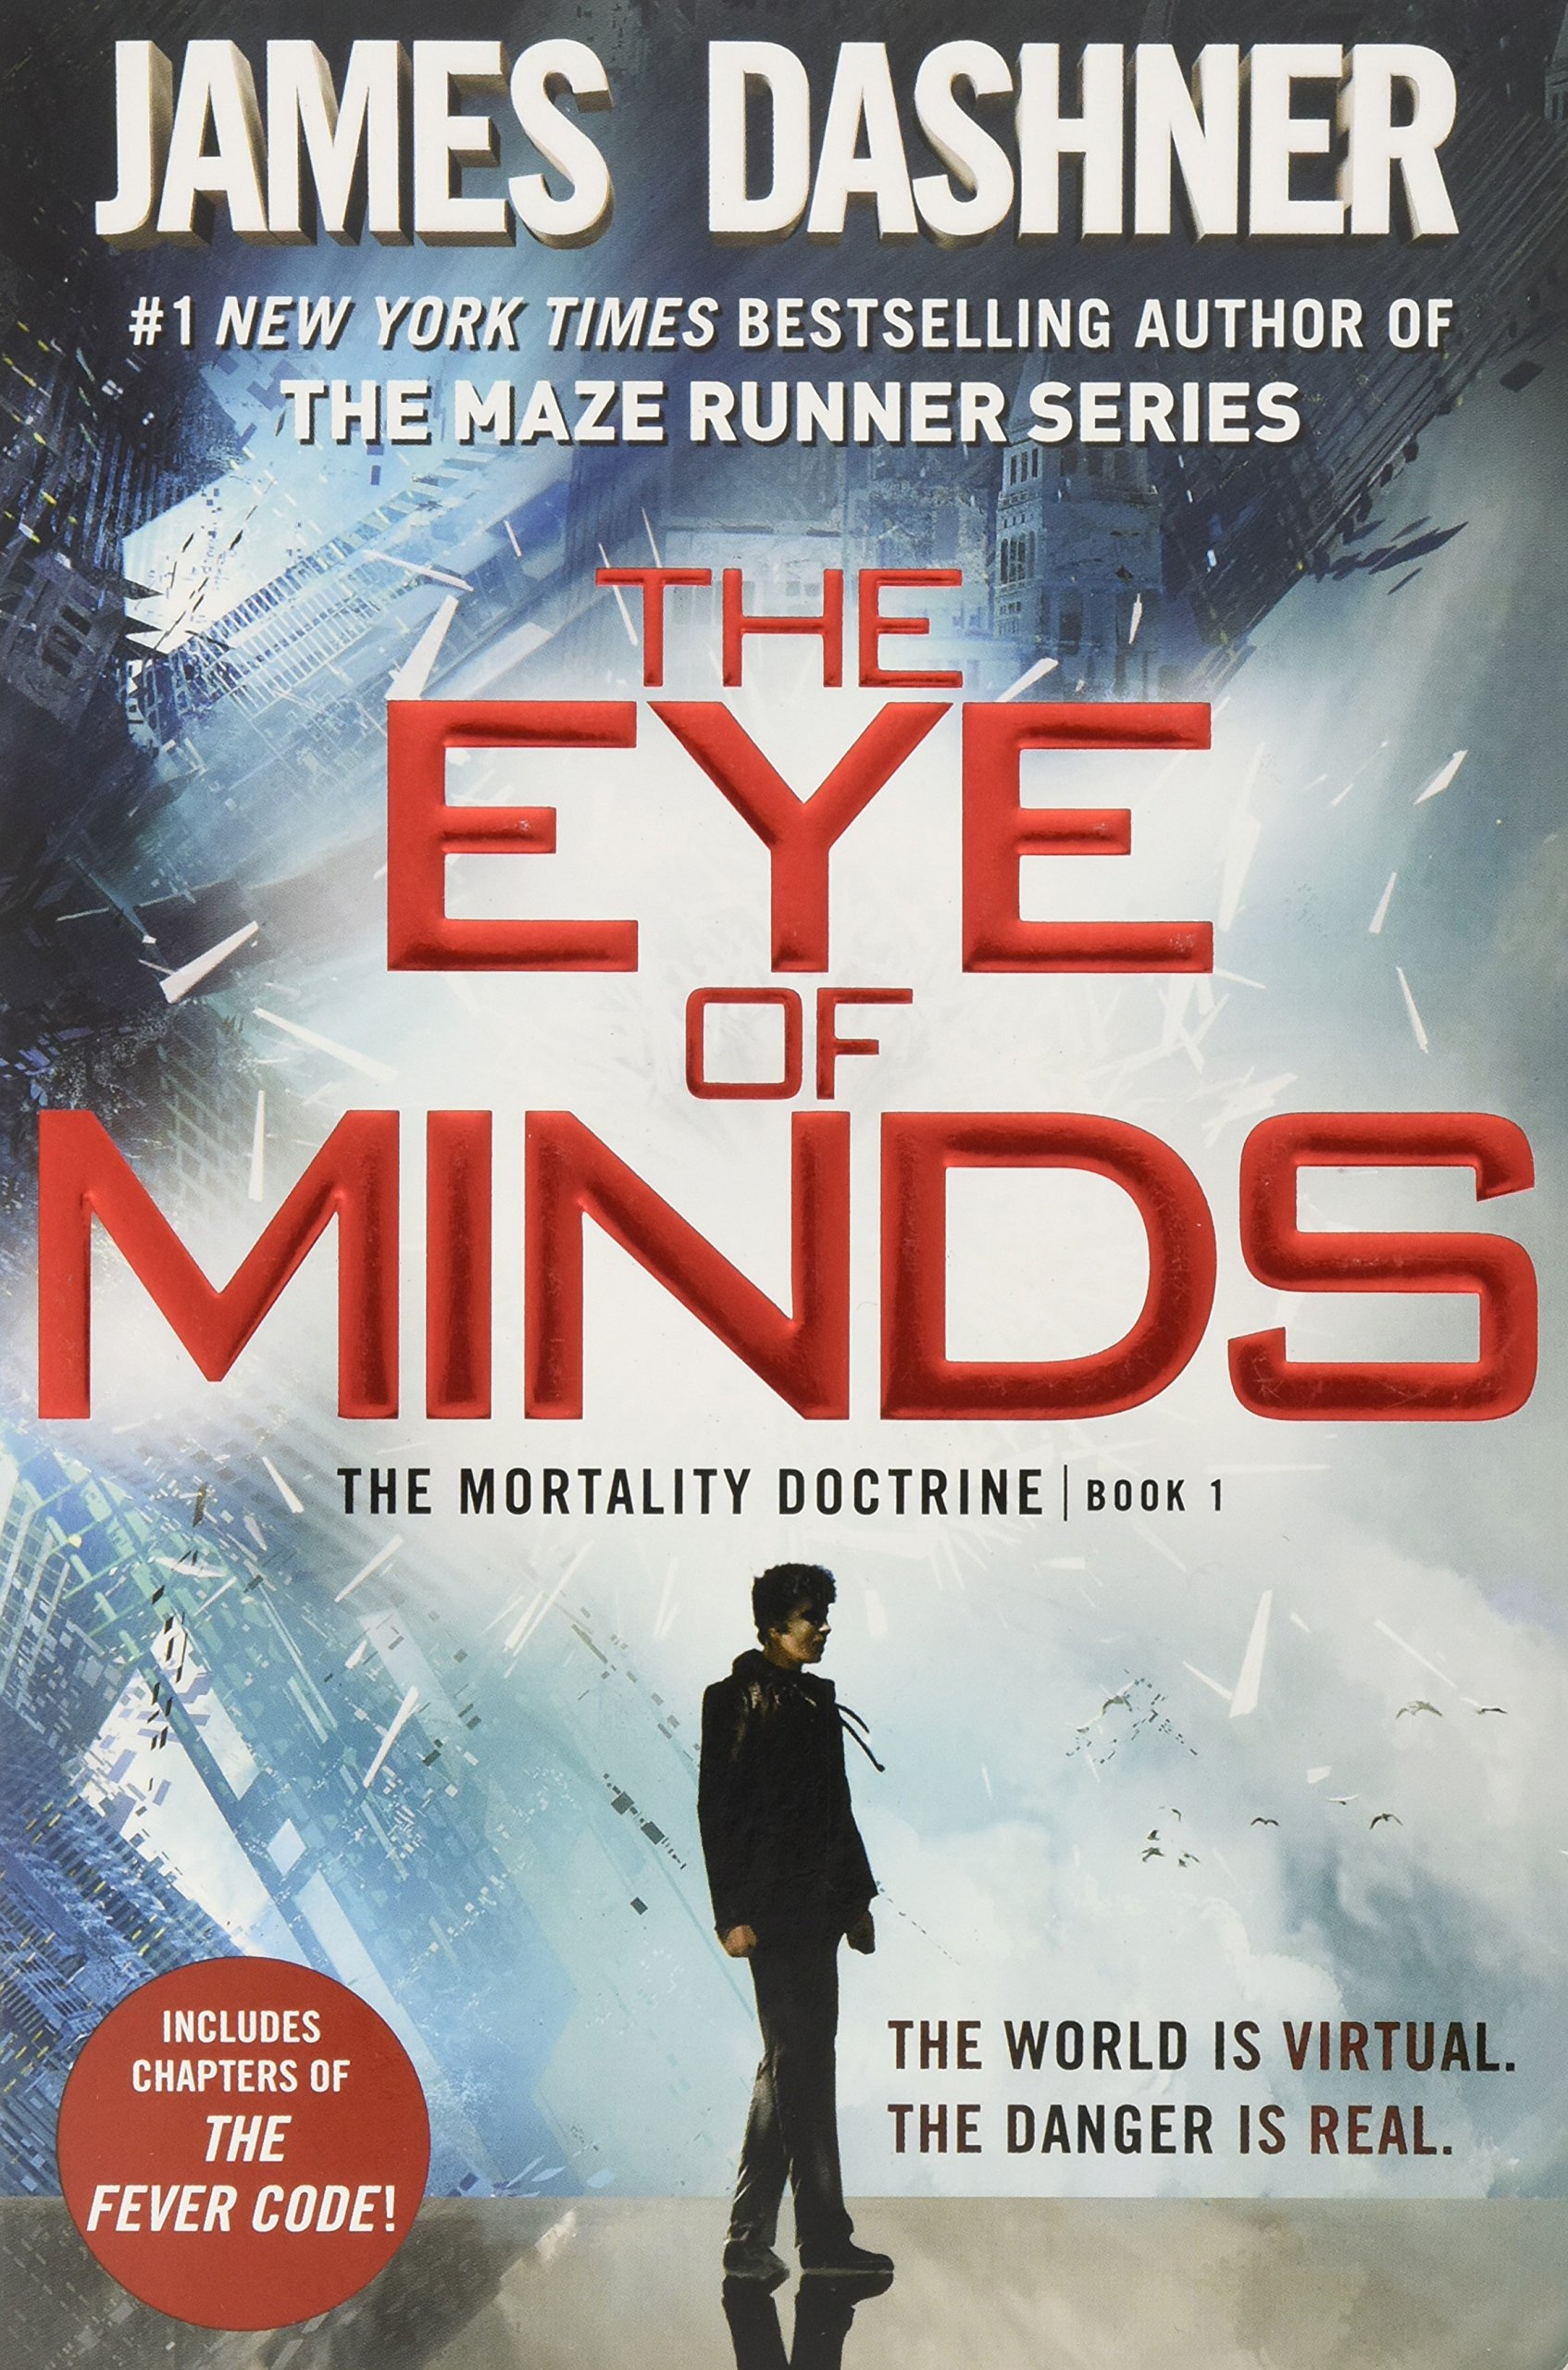 Amazon: The Eye Of Minds (the Mortality Doctrine, Book One)  (9780385741408): James Dashner: Books